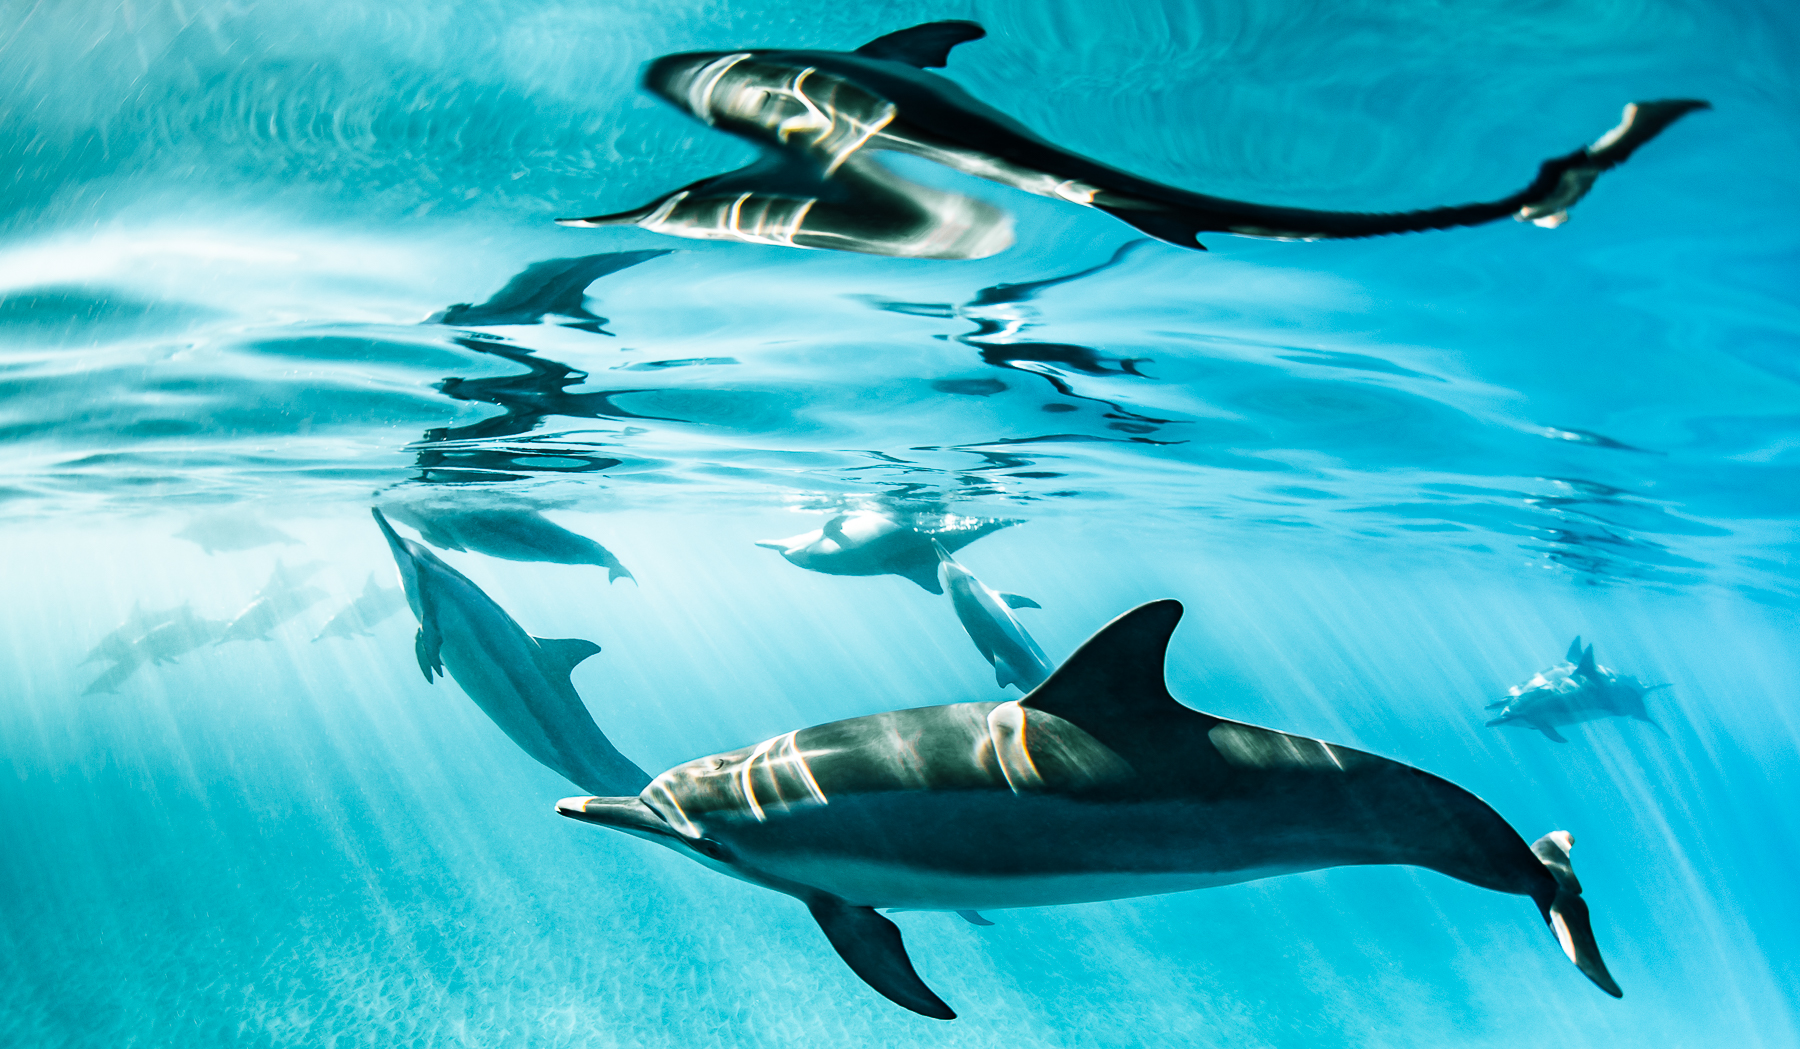 Sander_Cummings_Dolphins and Their Ways_Family Reflections_1.jpg